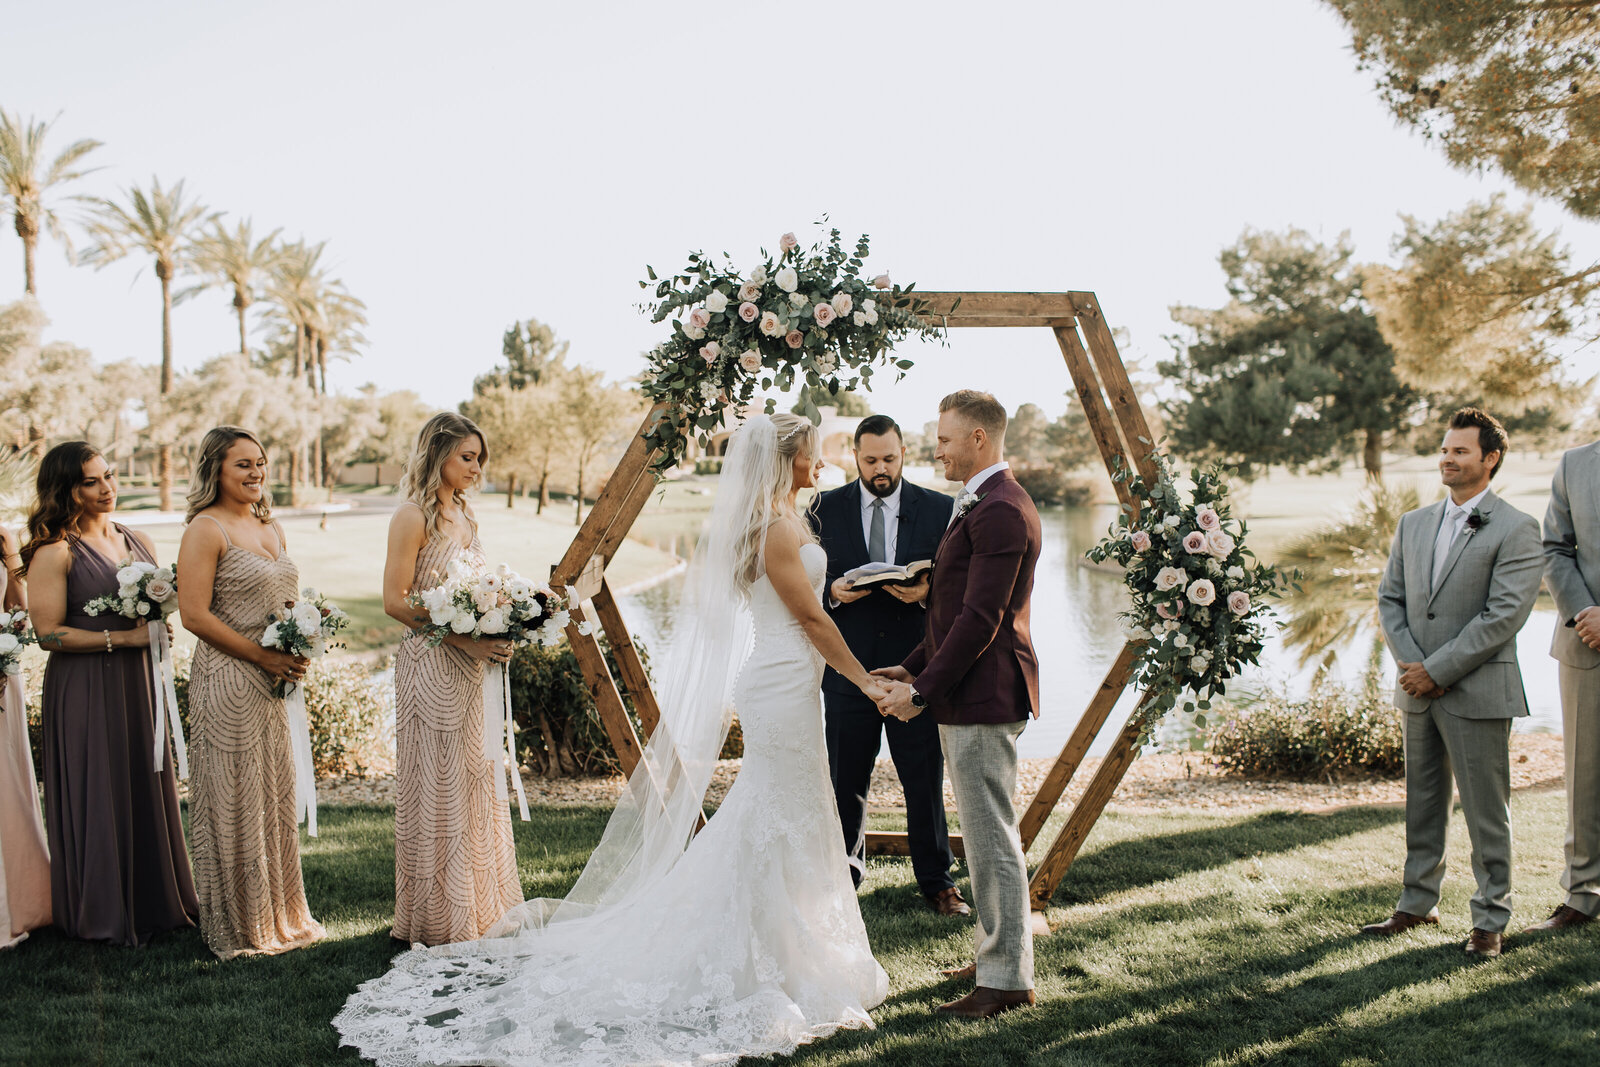 bride-groom-wedding-ceremony-arizona-luxury-wedding-flowers